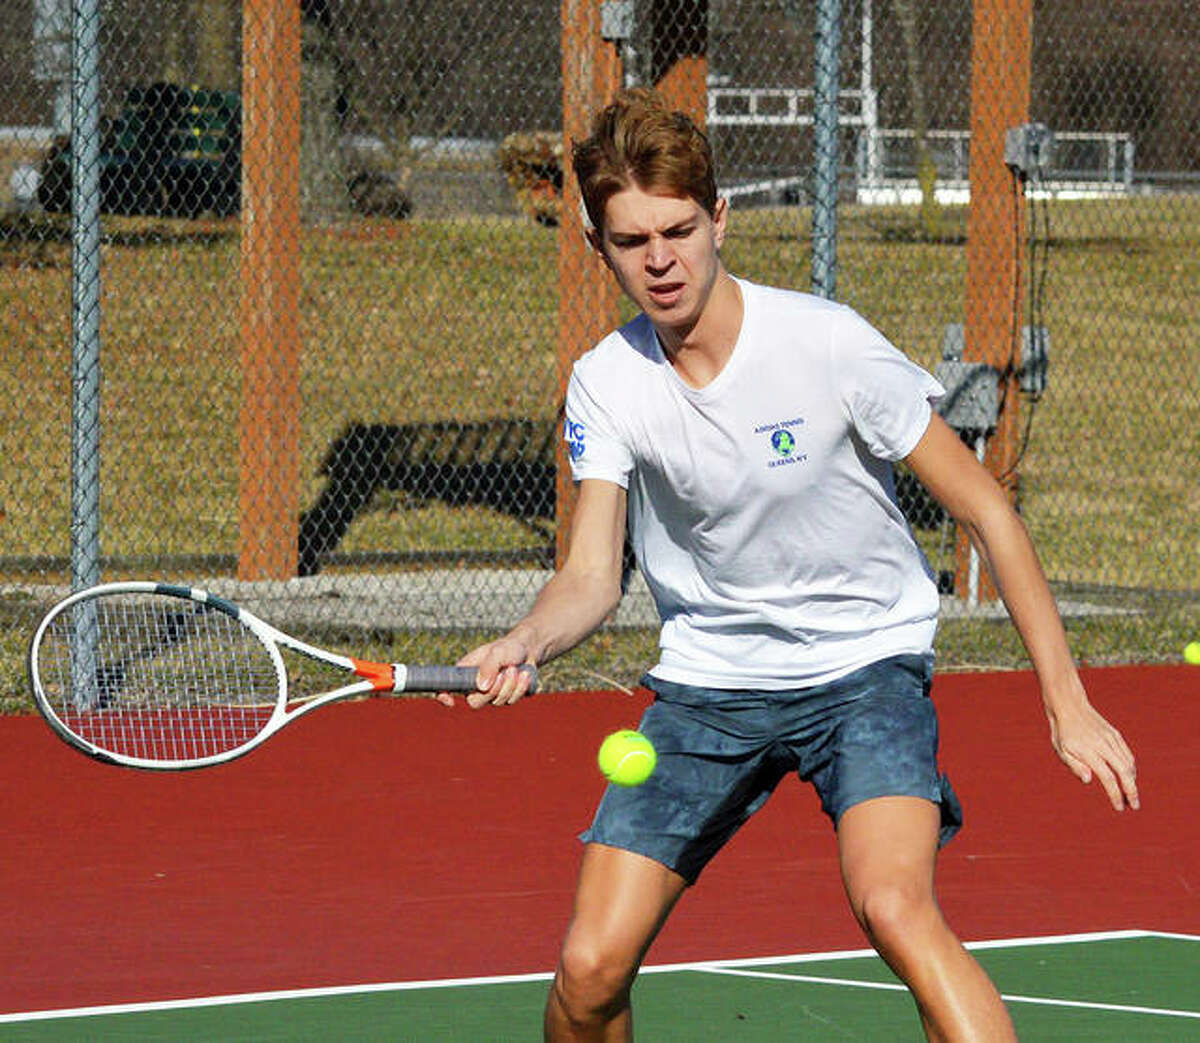 Edwardsville junior Ben Blake returns a shot during practice on Tuesday. Blake is one of several players competing for the No. 1 singles position.